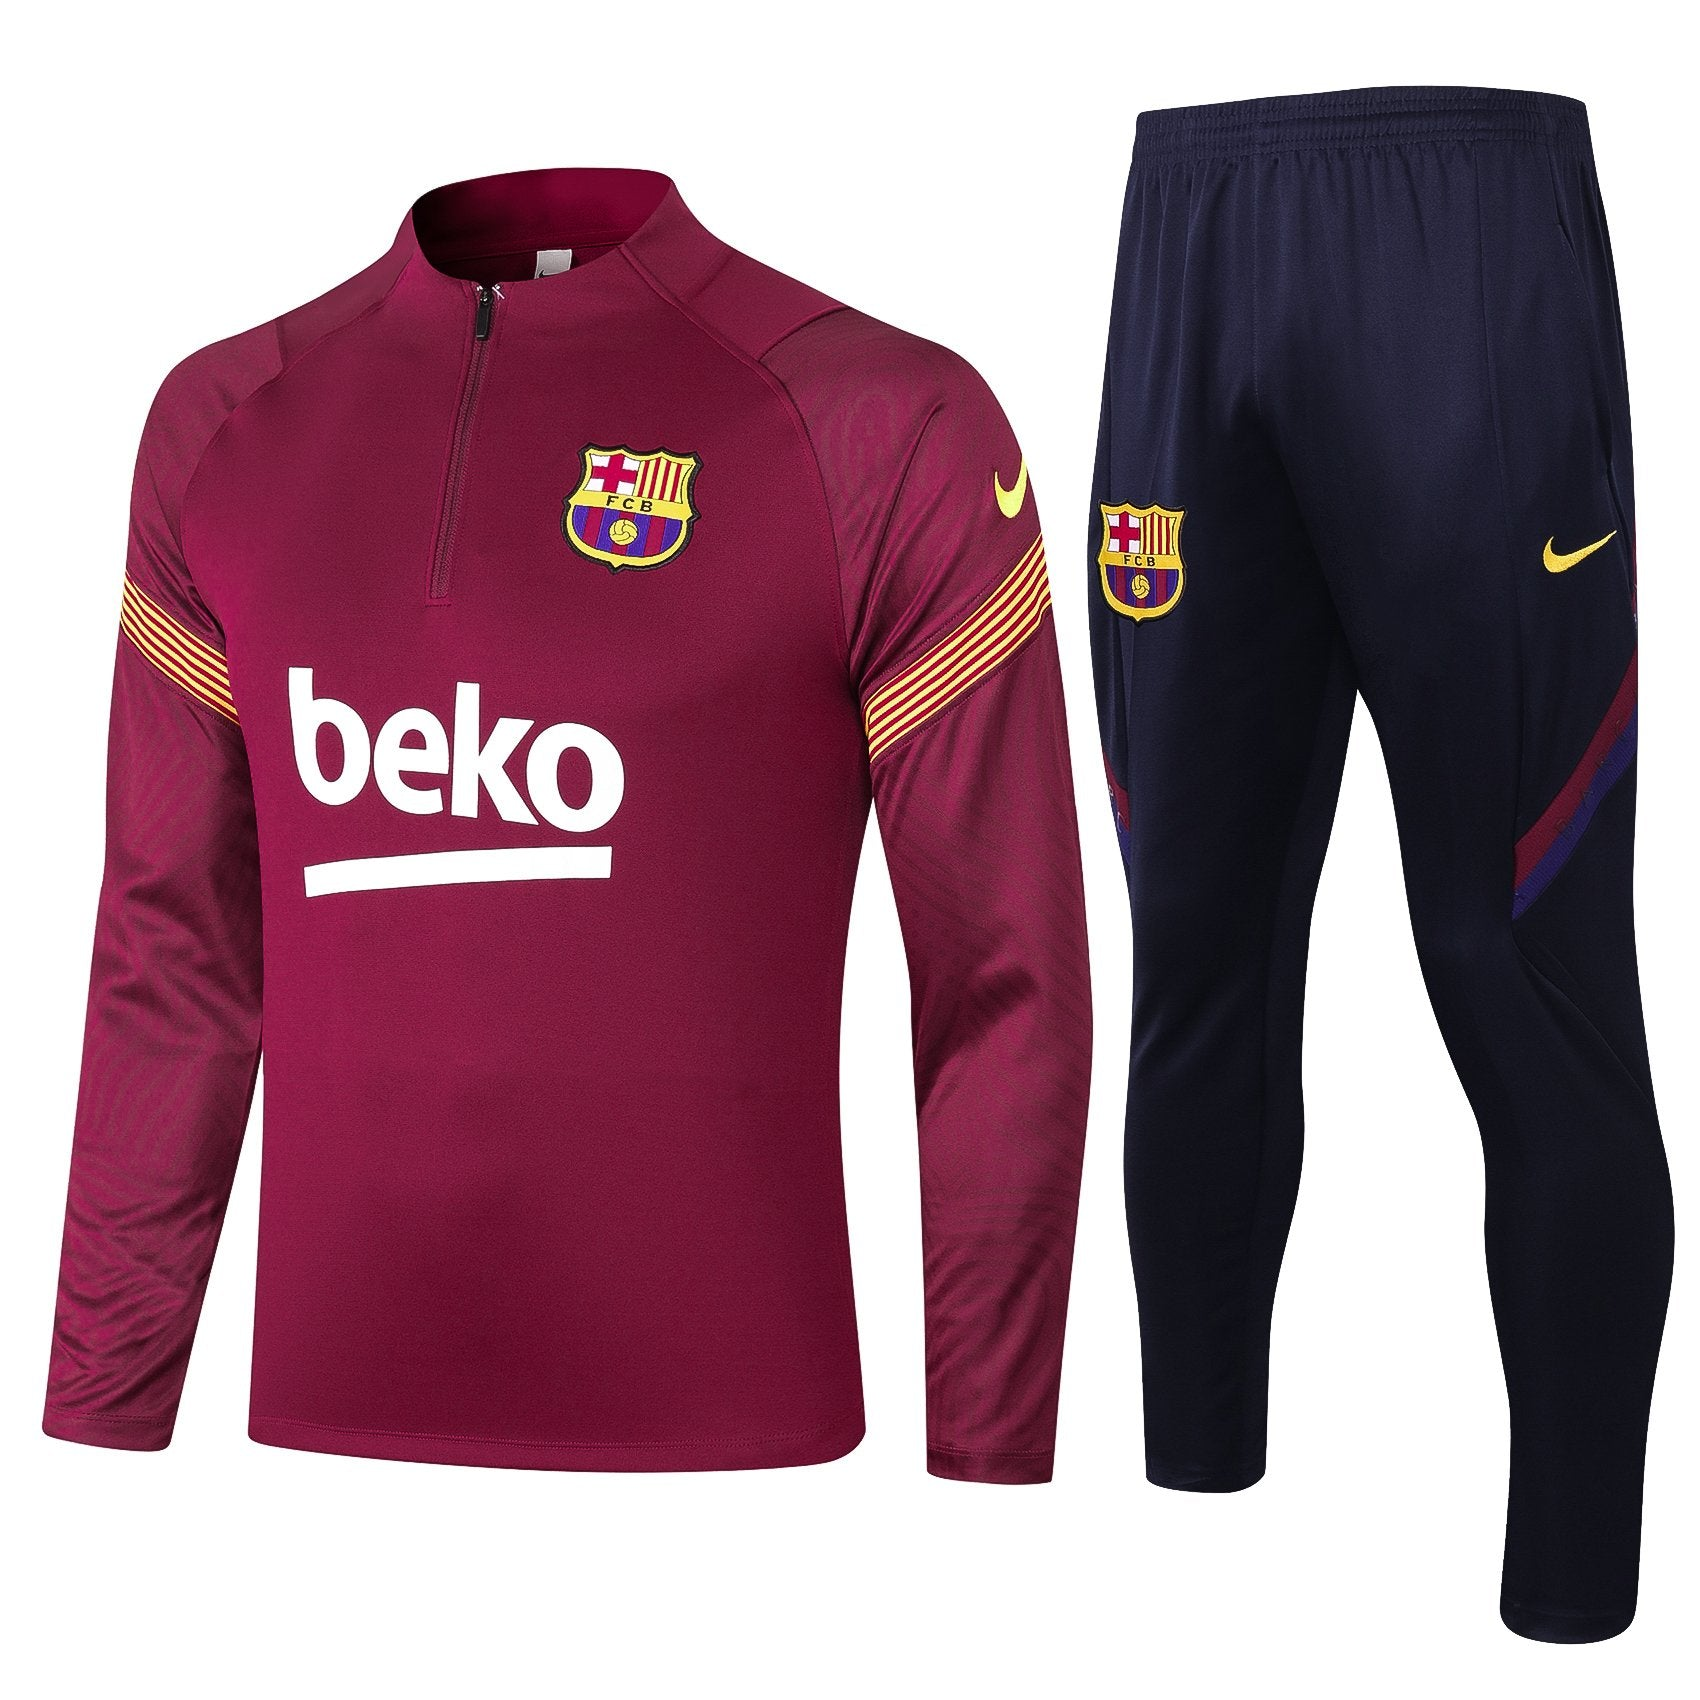 Survetement FC Barcelone Nike 2021 Junior/Enfant Foot Online freeshipping - Foot Online